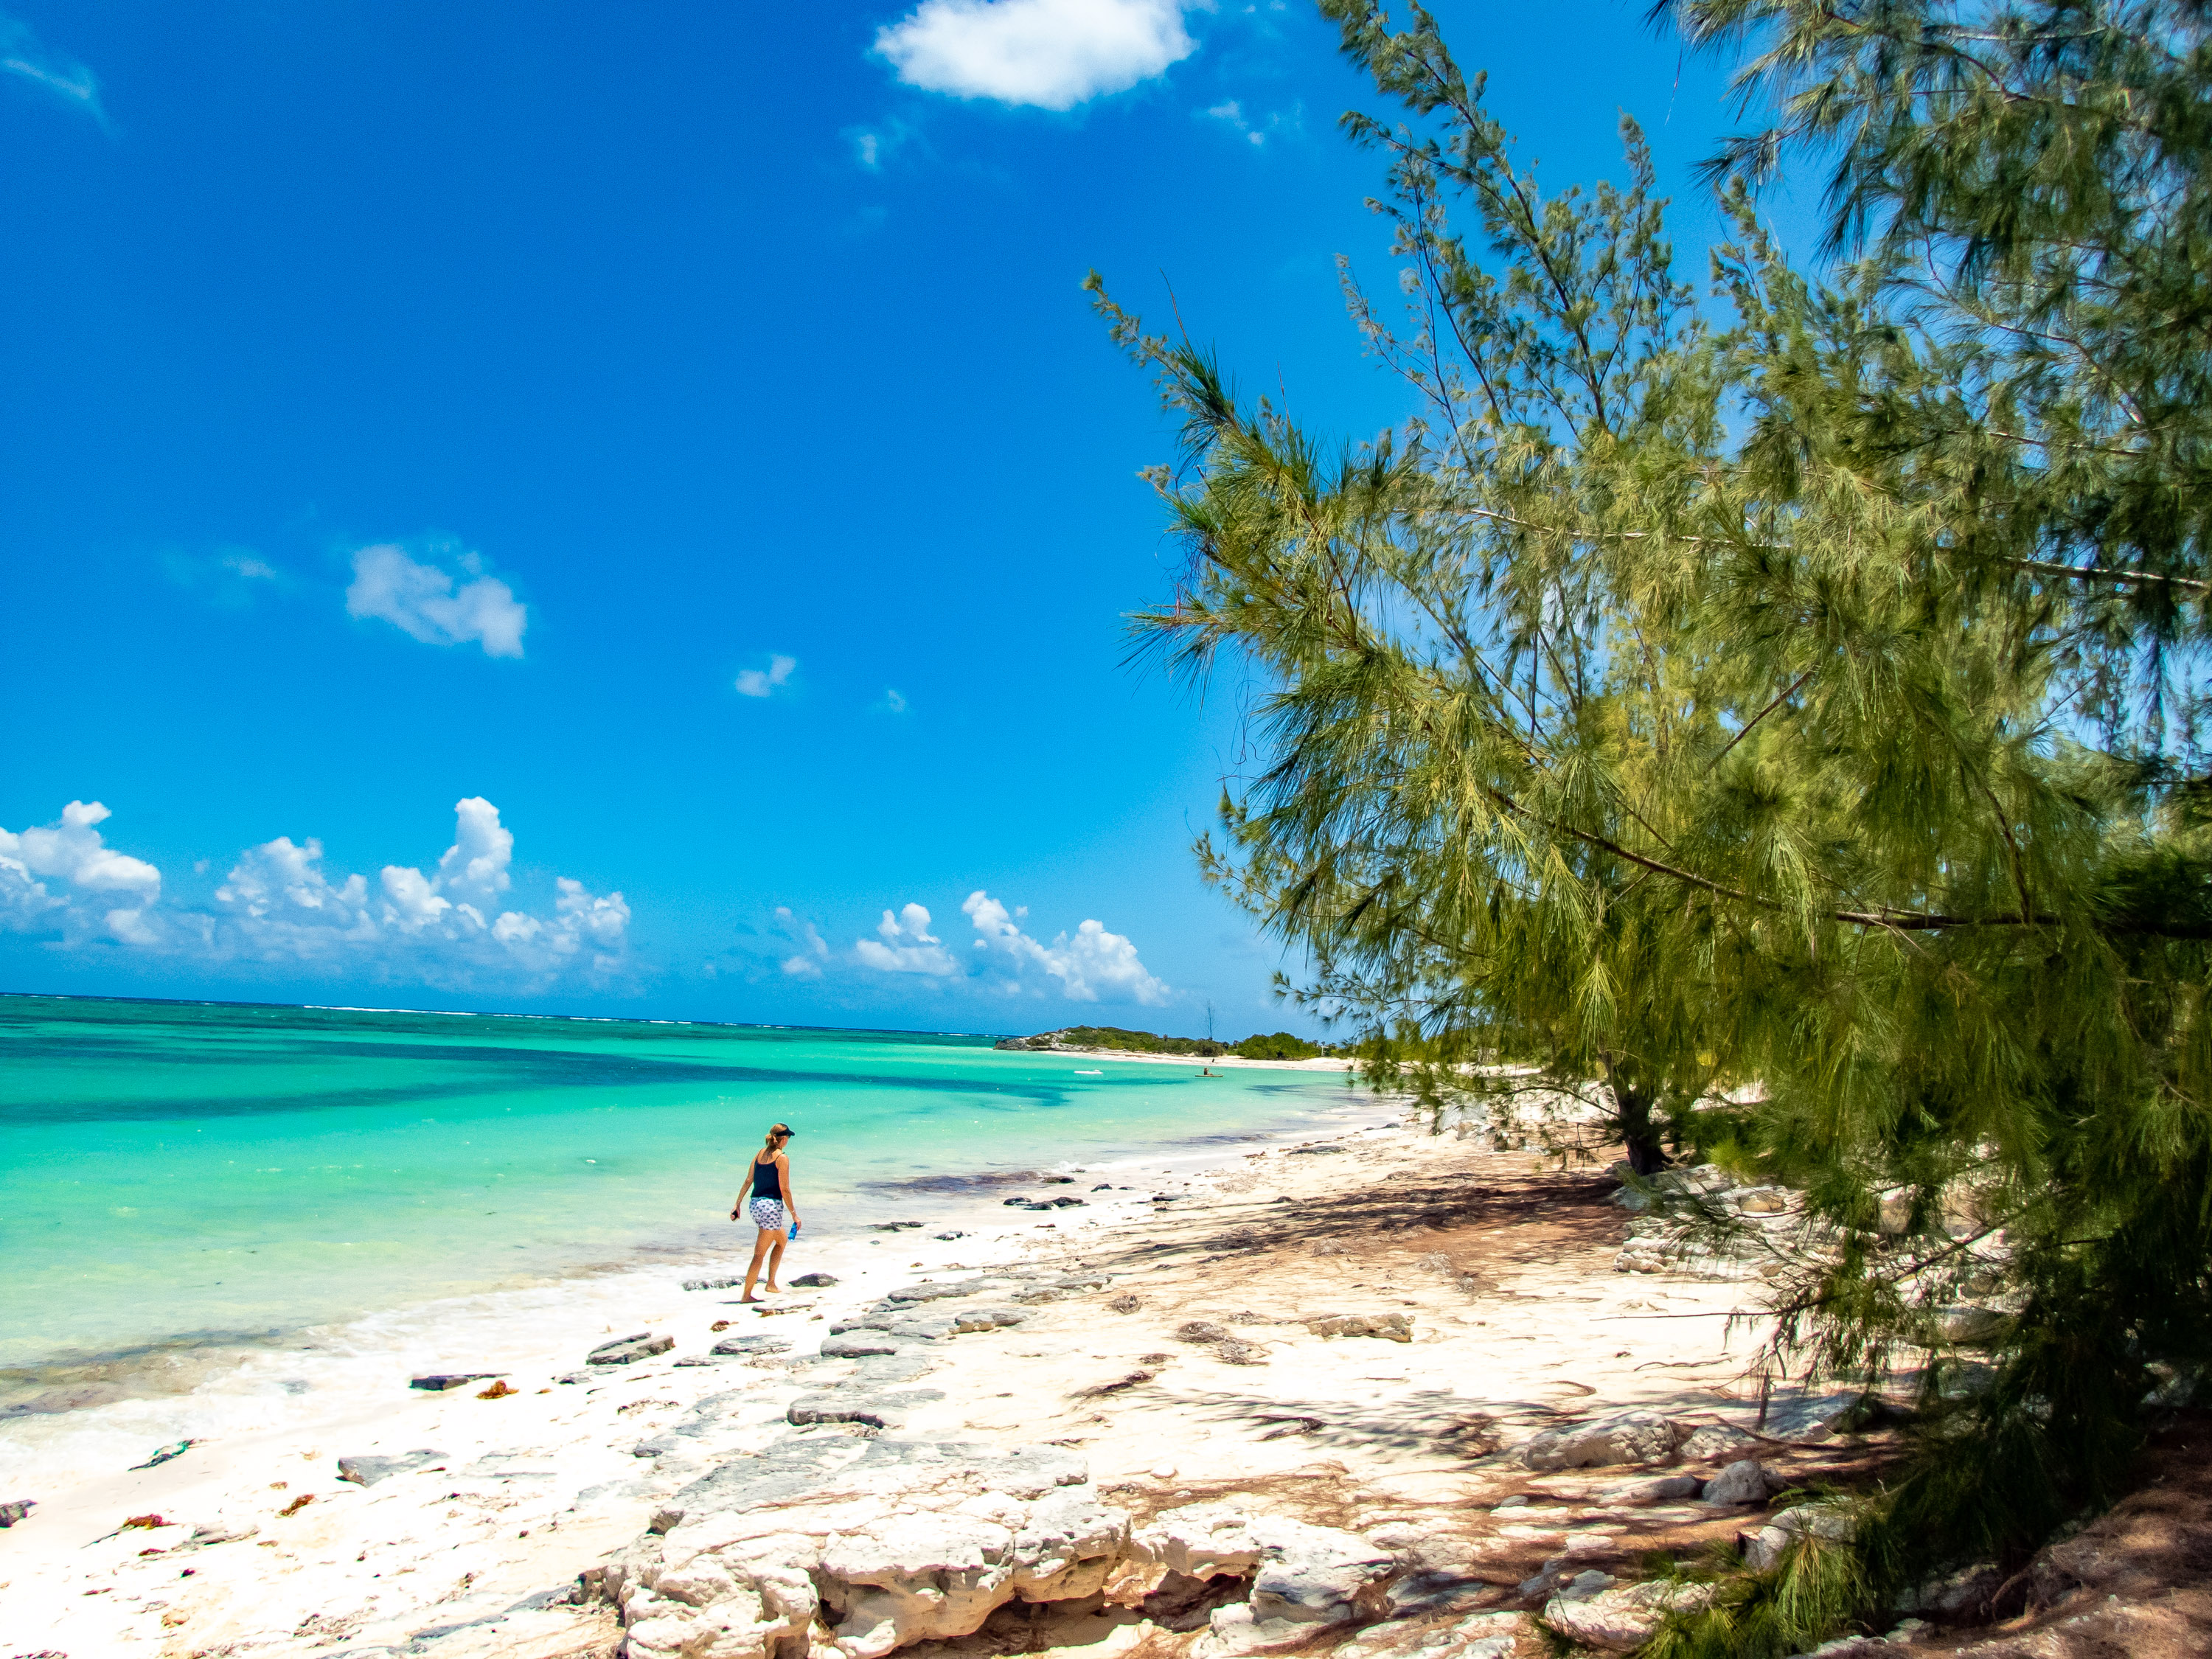 Unspoiled Turks and Caicos